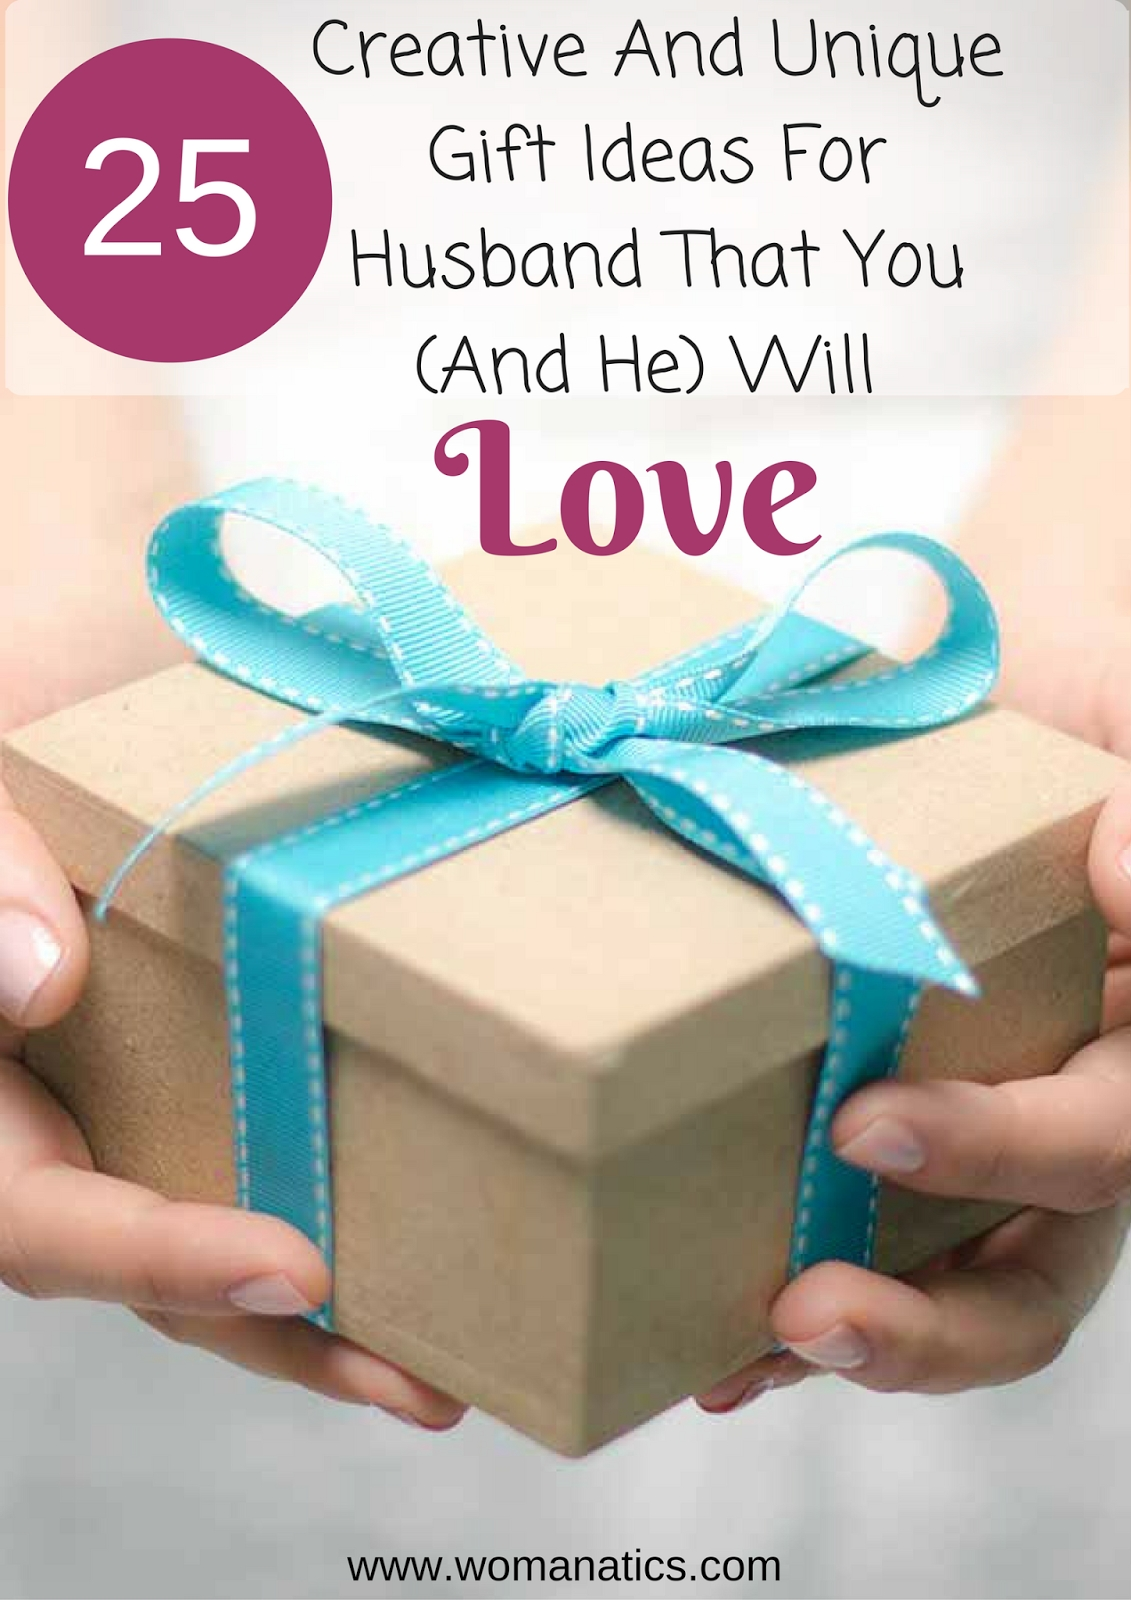 10 Cute Birthday Gifts For Husband Ideas 2021